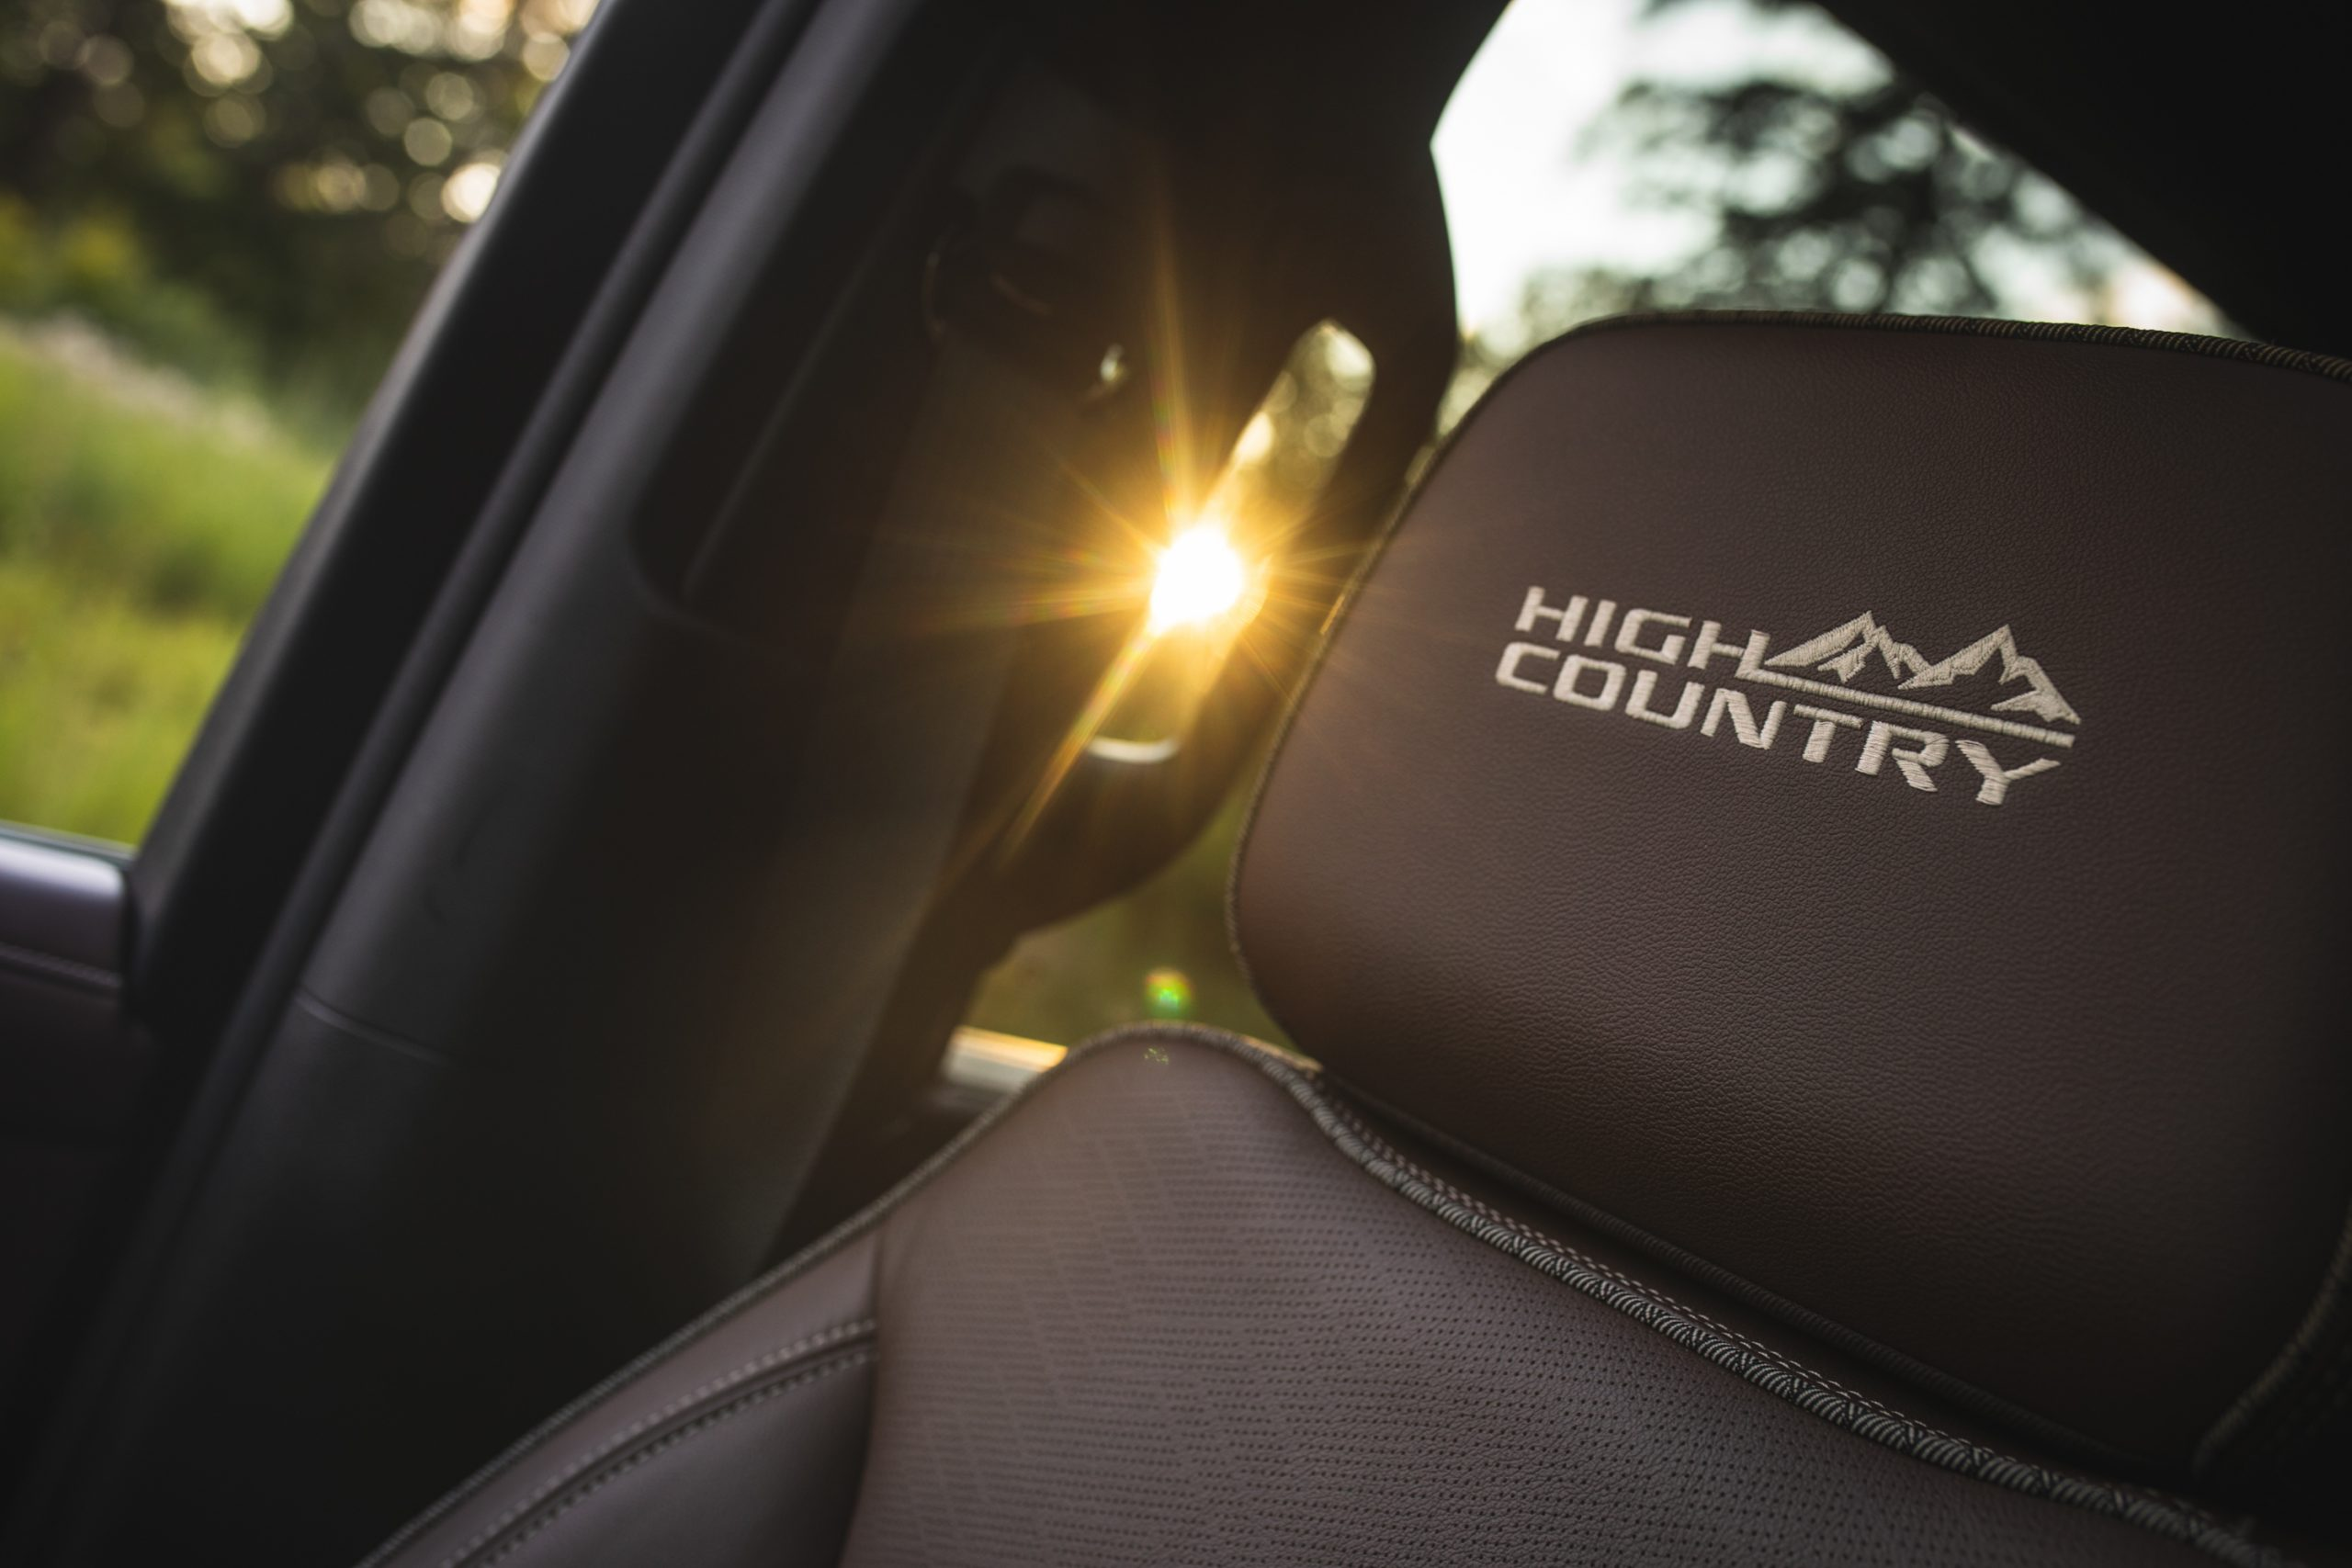 2021 Chevrolet Tahoe High Country headrest stitching